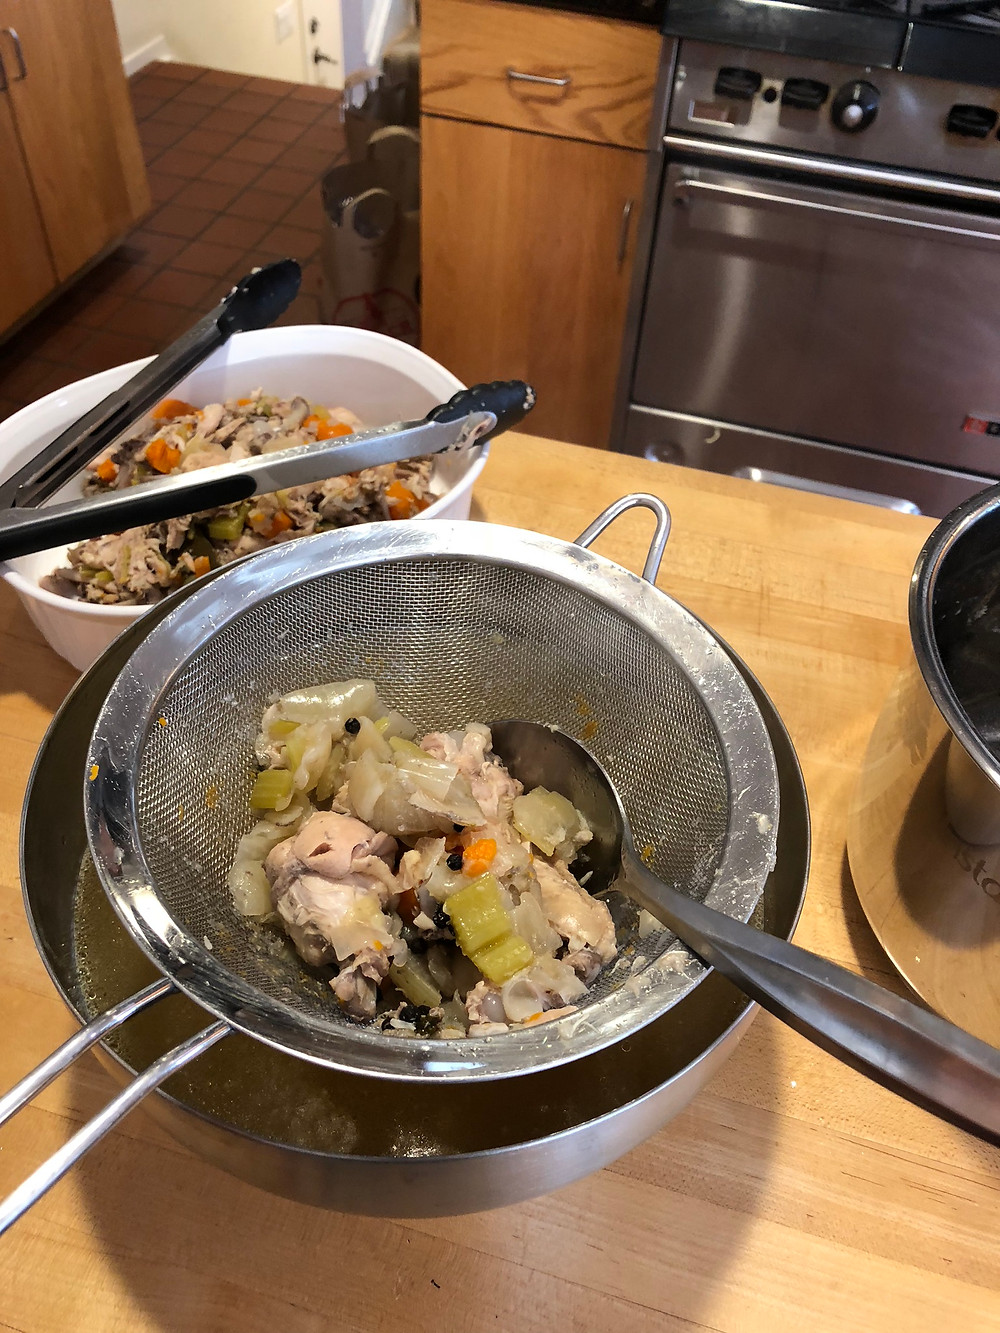 If you doing this right after the pressue naturally release keep in mind that everything is still very hot. Scoop out some of the vegetables and chicken and place in the strainer. Carefully, pour the broth thru the strainer ...remember it's hot!  Keep the golden broth and discard everything else.